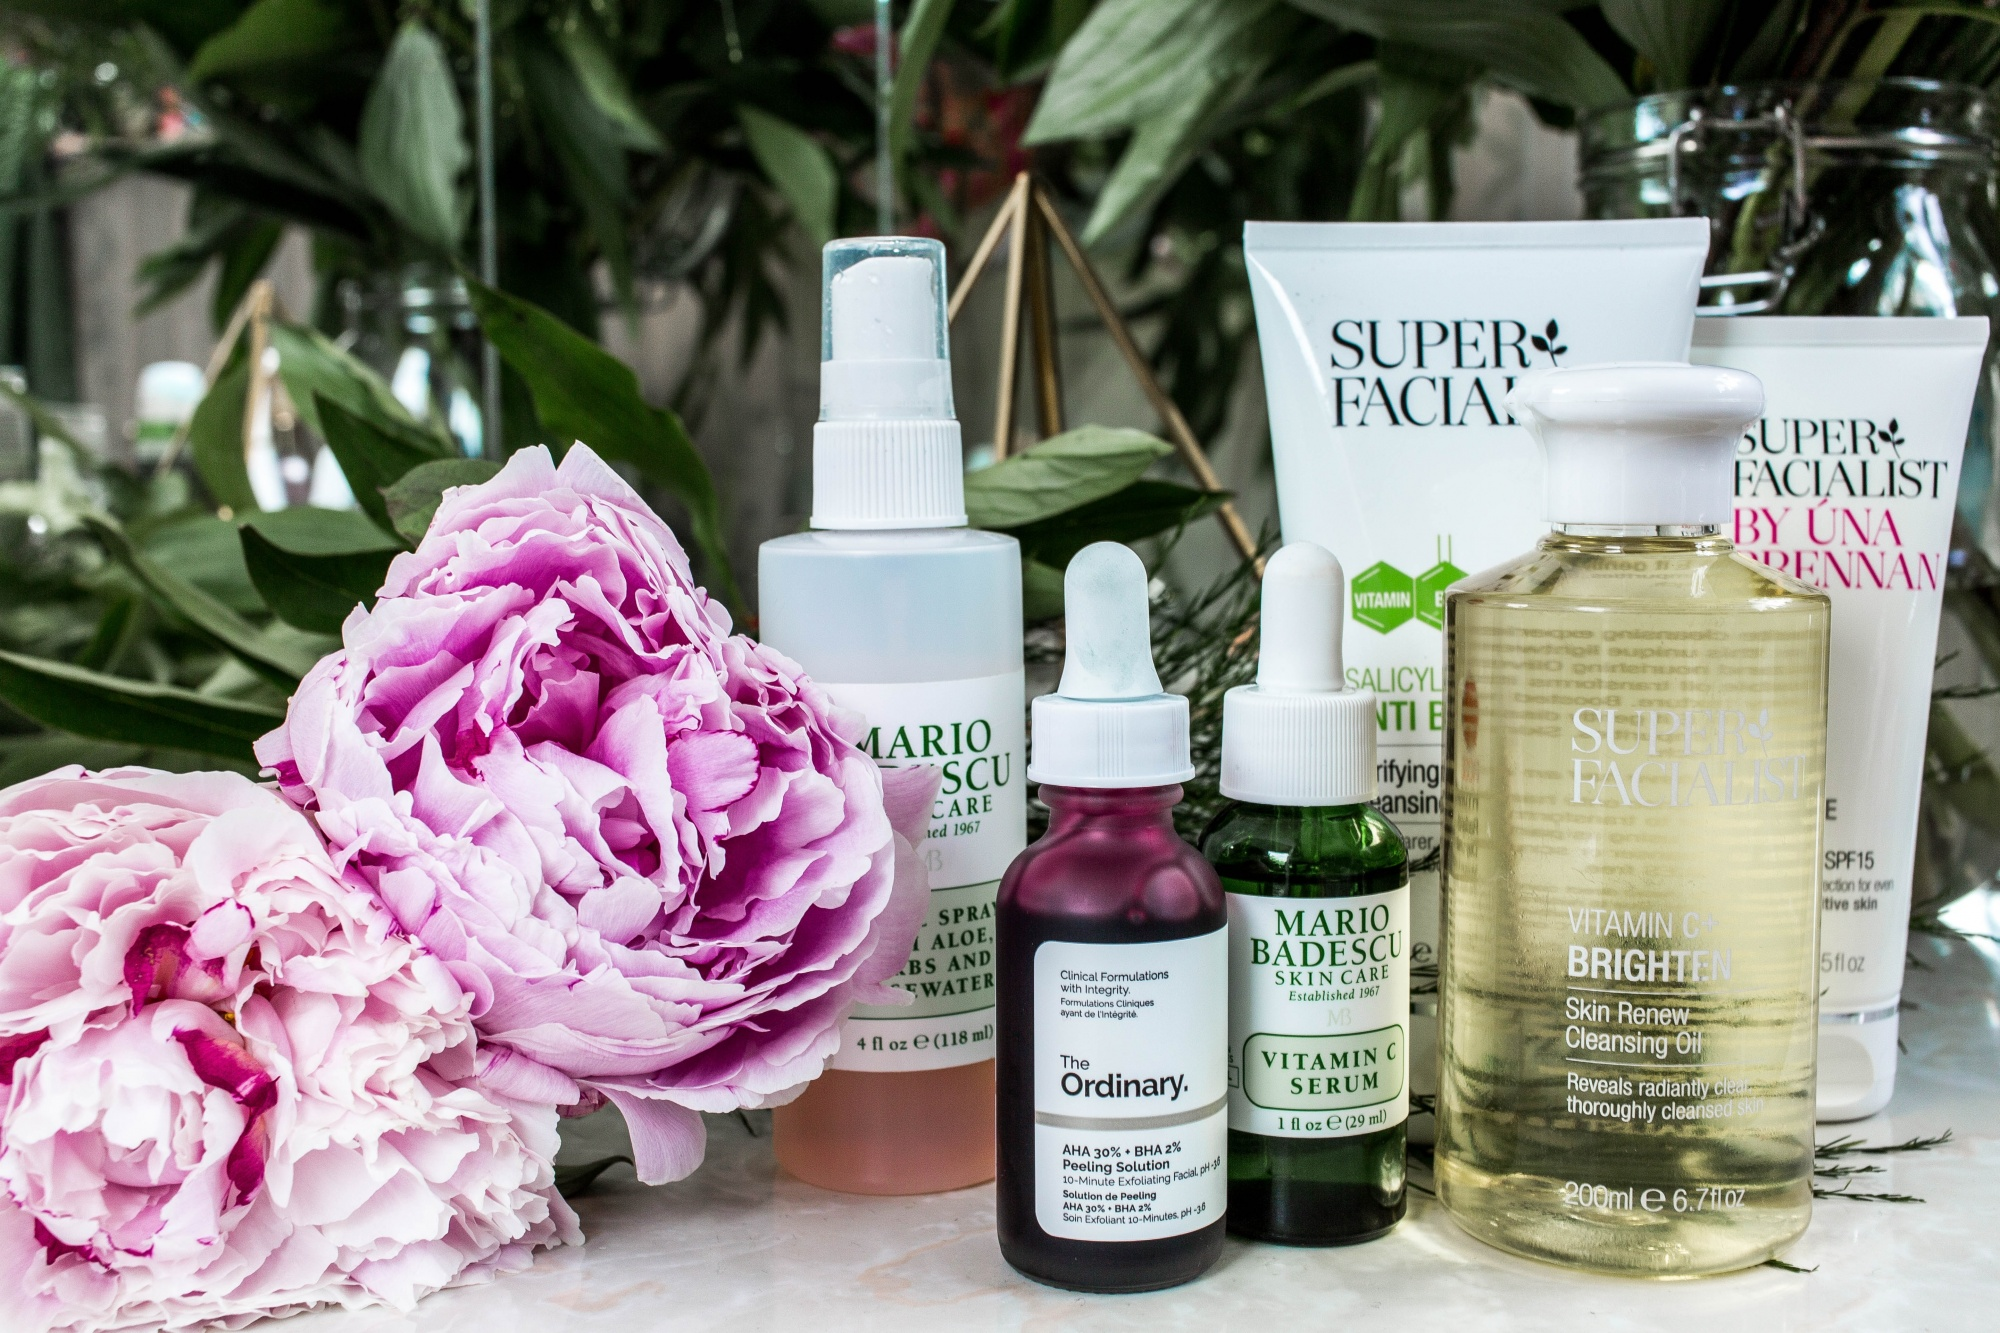 how to reduce hyperpigmentation, hyperpigmentation solutions various bottles on a table with flowers including products by Mario Badescu, The Ordinary, and more